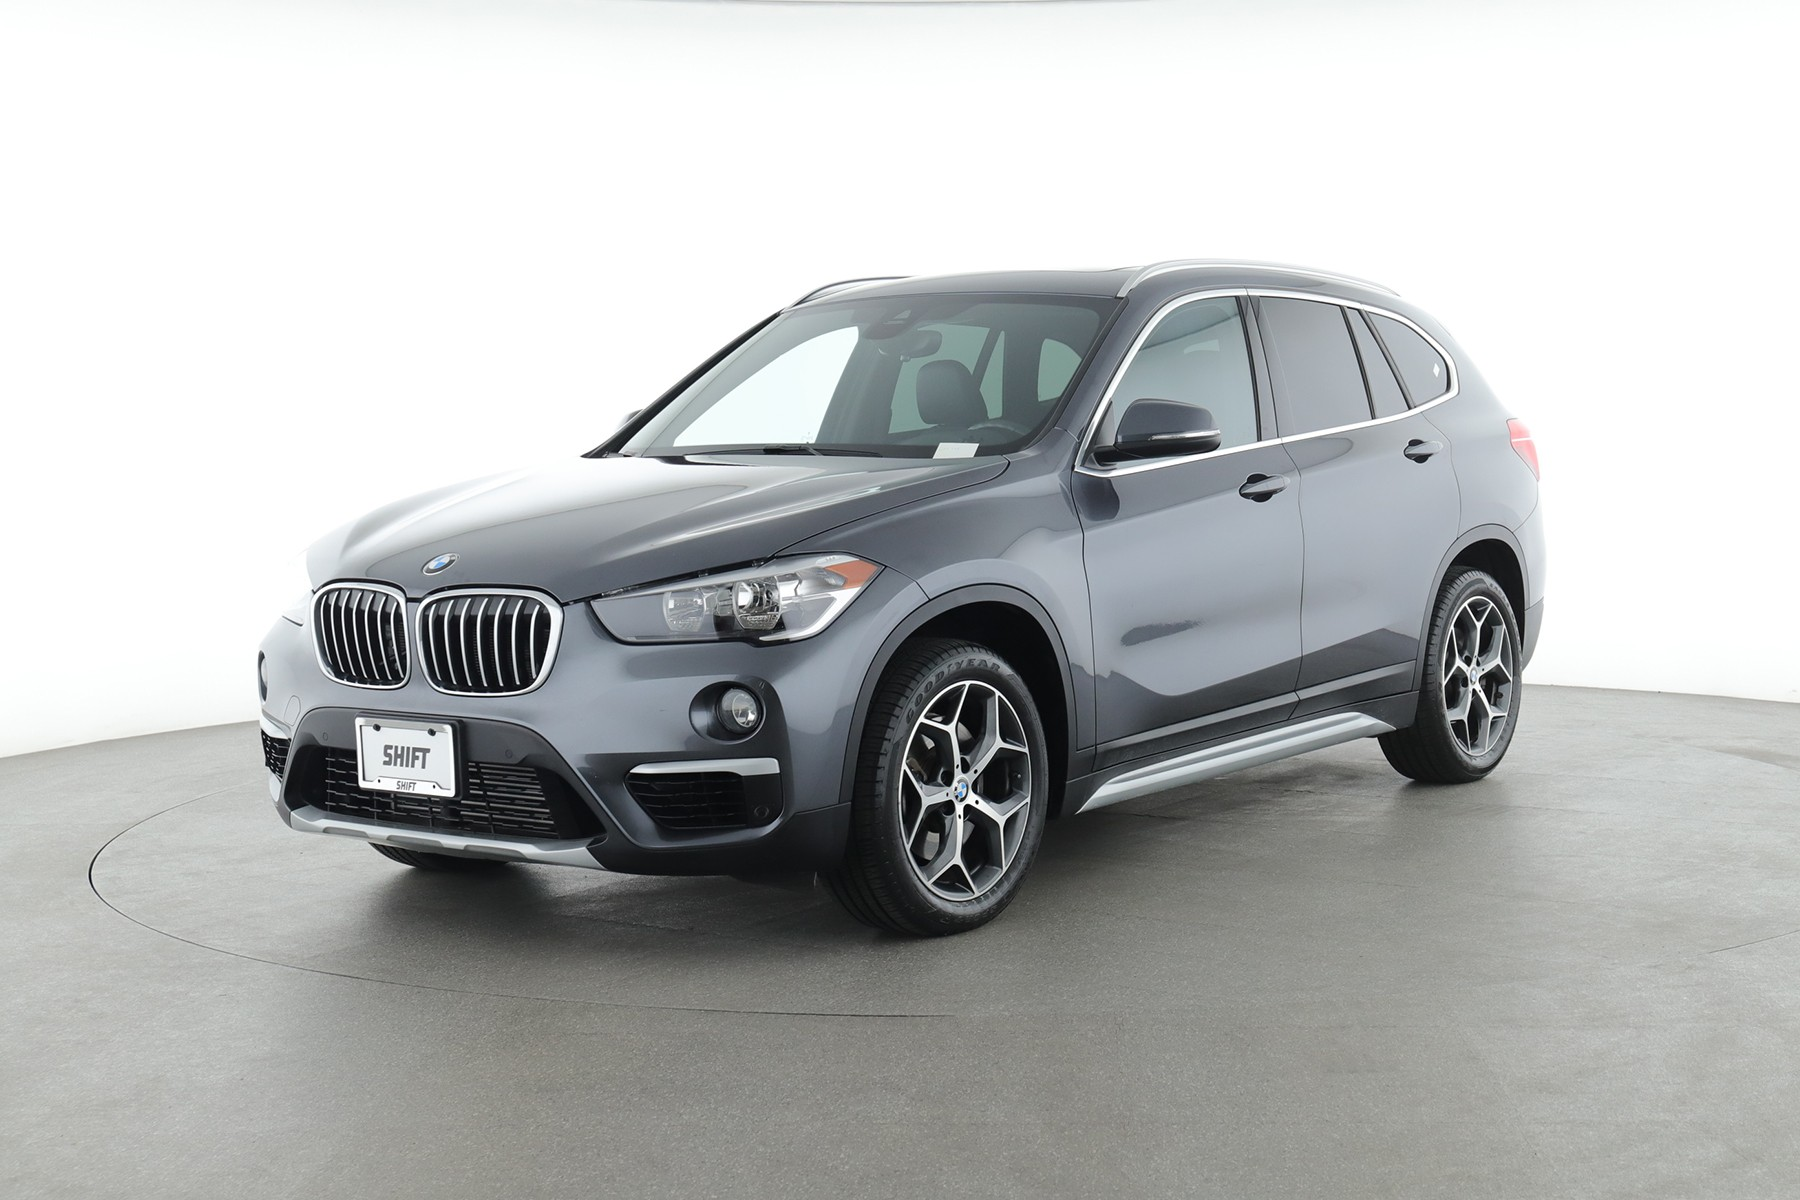 2019 BMW X1 xDrive28i (from $30,350)